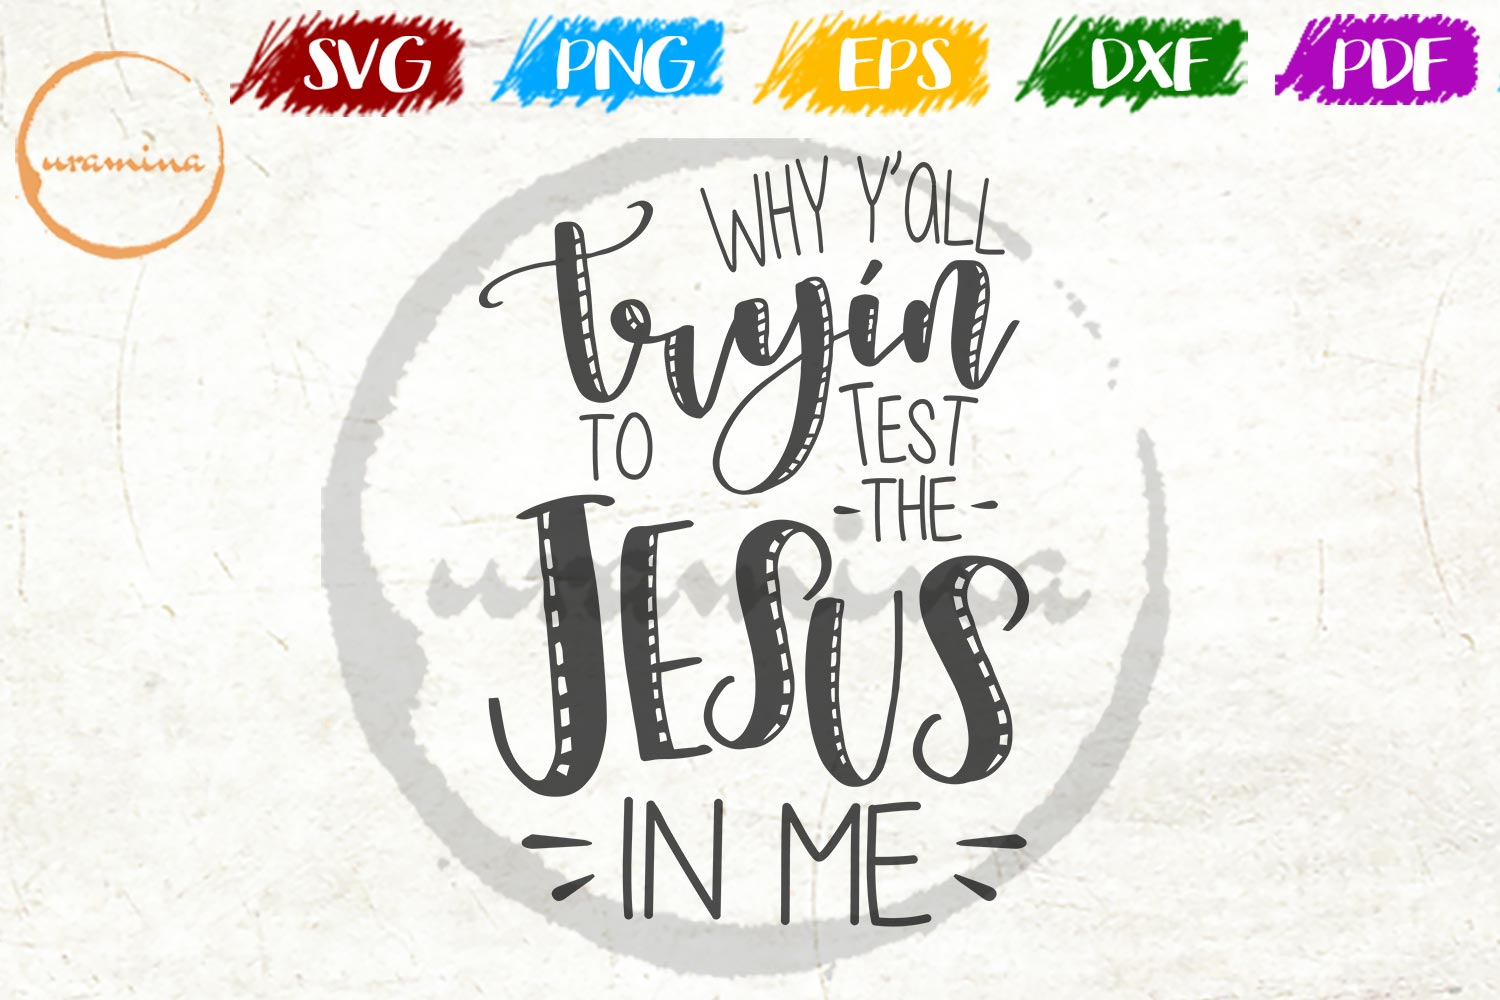 Download Free Why Y All Tryin To Trot The Jesus In Me Graphic By Uramina for Cricut Explore, Silhouette and other cutting machines.